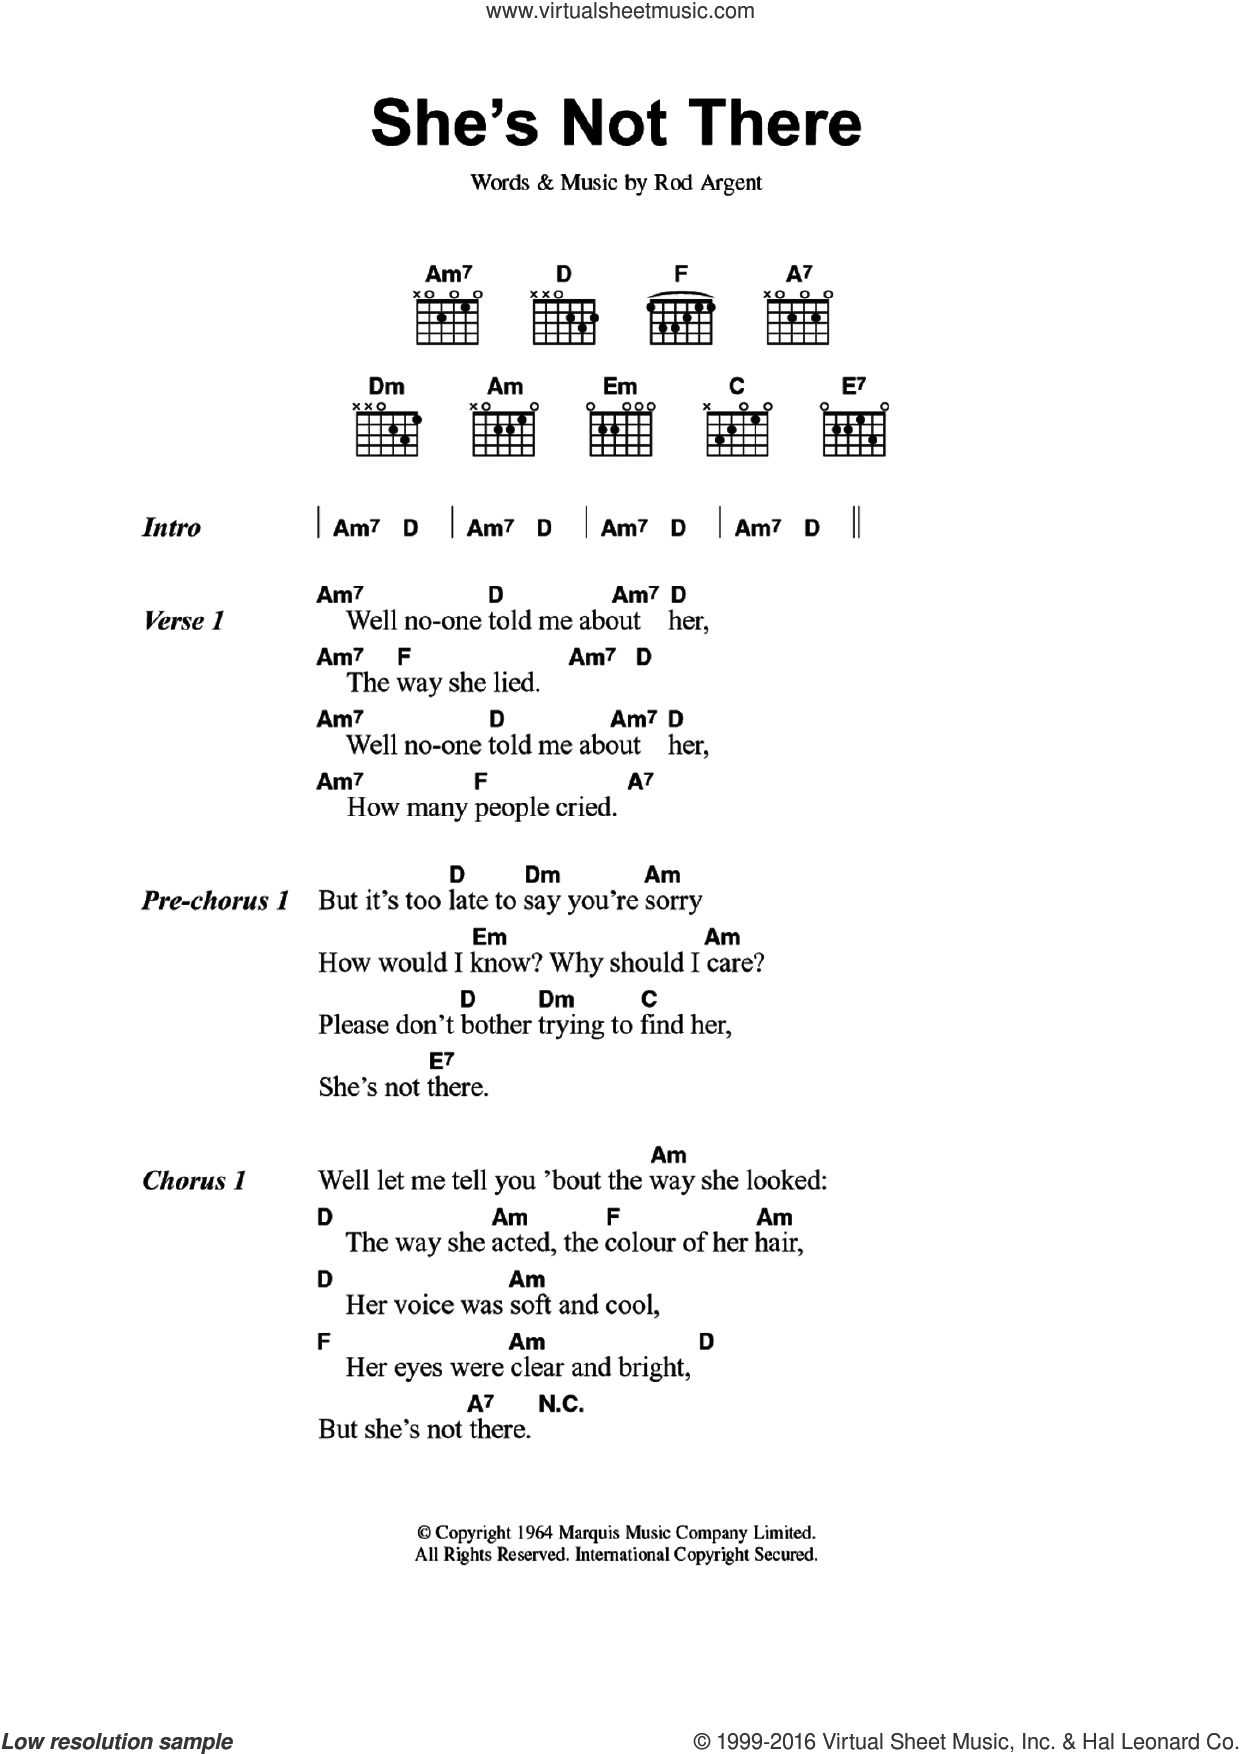 She's Not There sheet music for guitar (chords) by The Zombies and Rod Argent, intermediate skill level